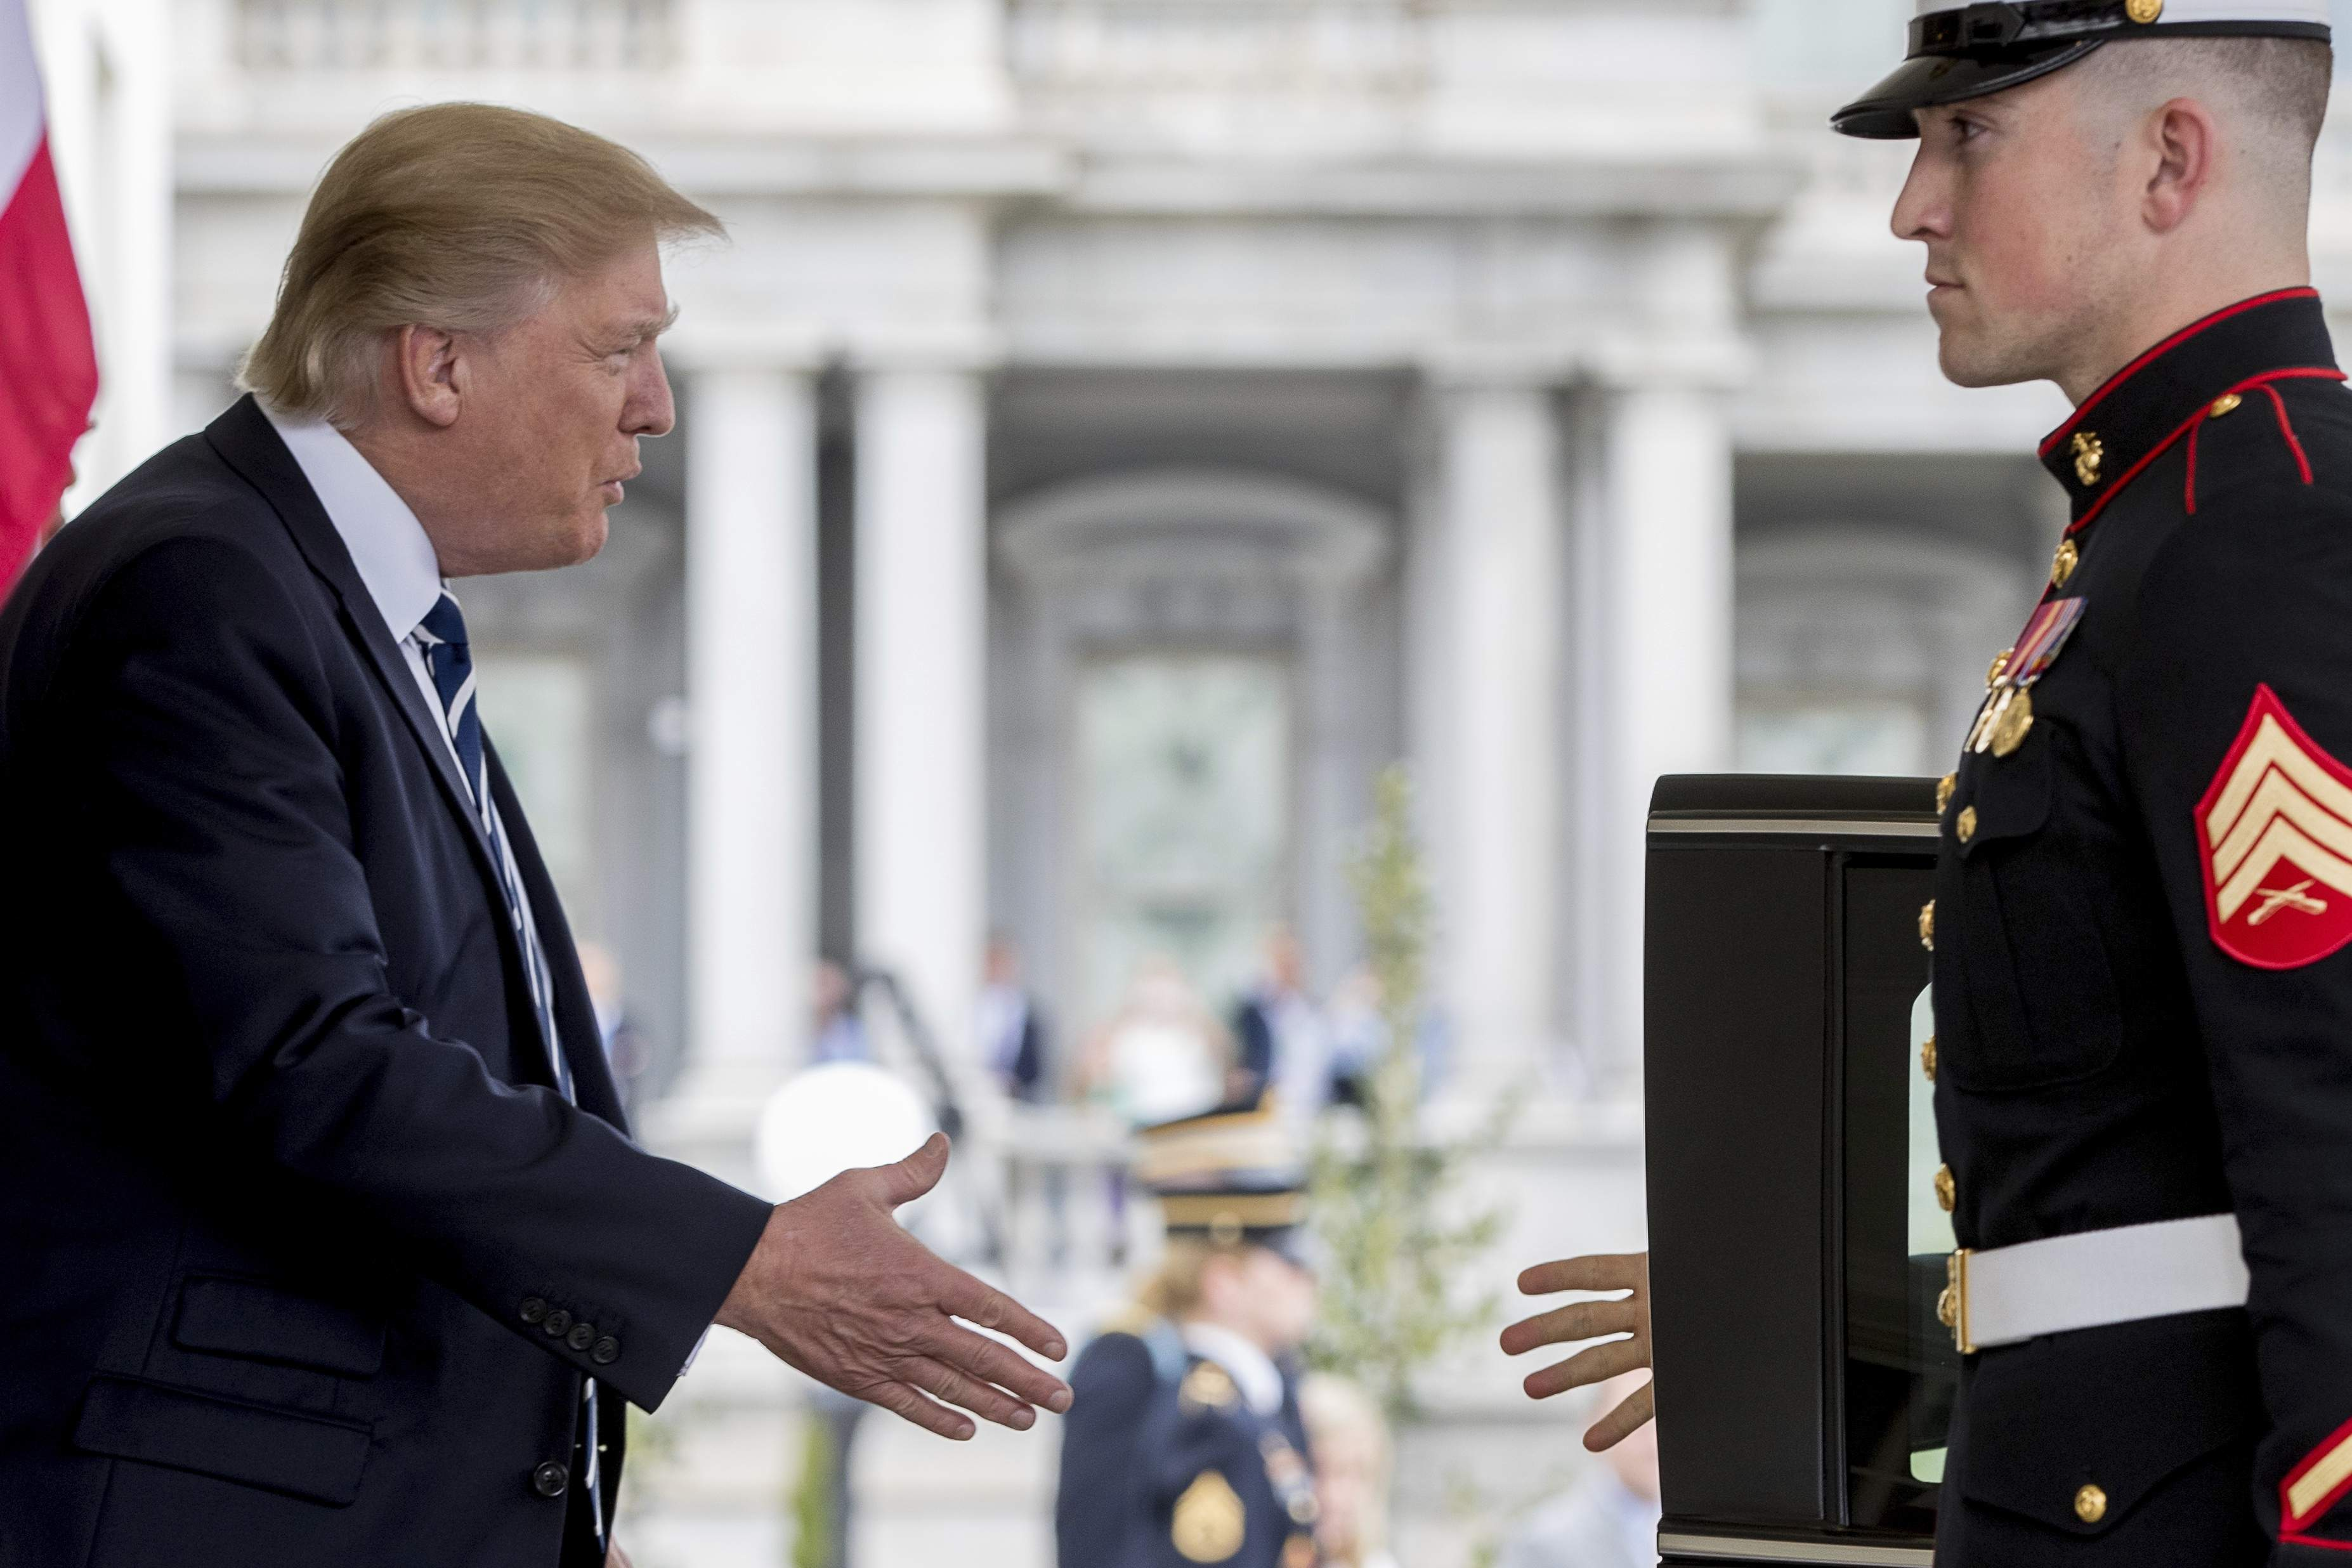 DAY 74 - In this April 3, 2017, file photo, President Donald Trump greets Egyptian President Abdel Fattah Al-Sisi as he arrives at the White House in Washington. (AP Photo/Andrew Harnik, File)